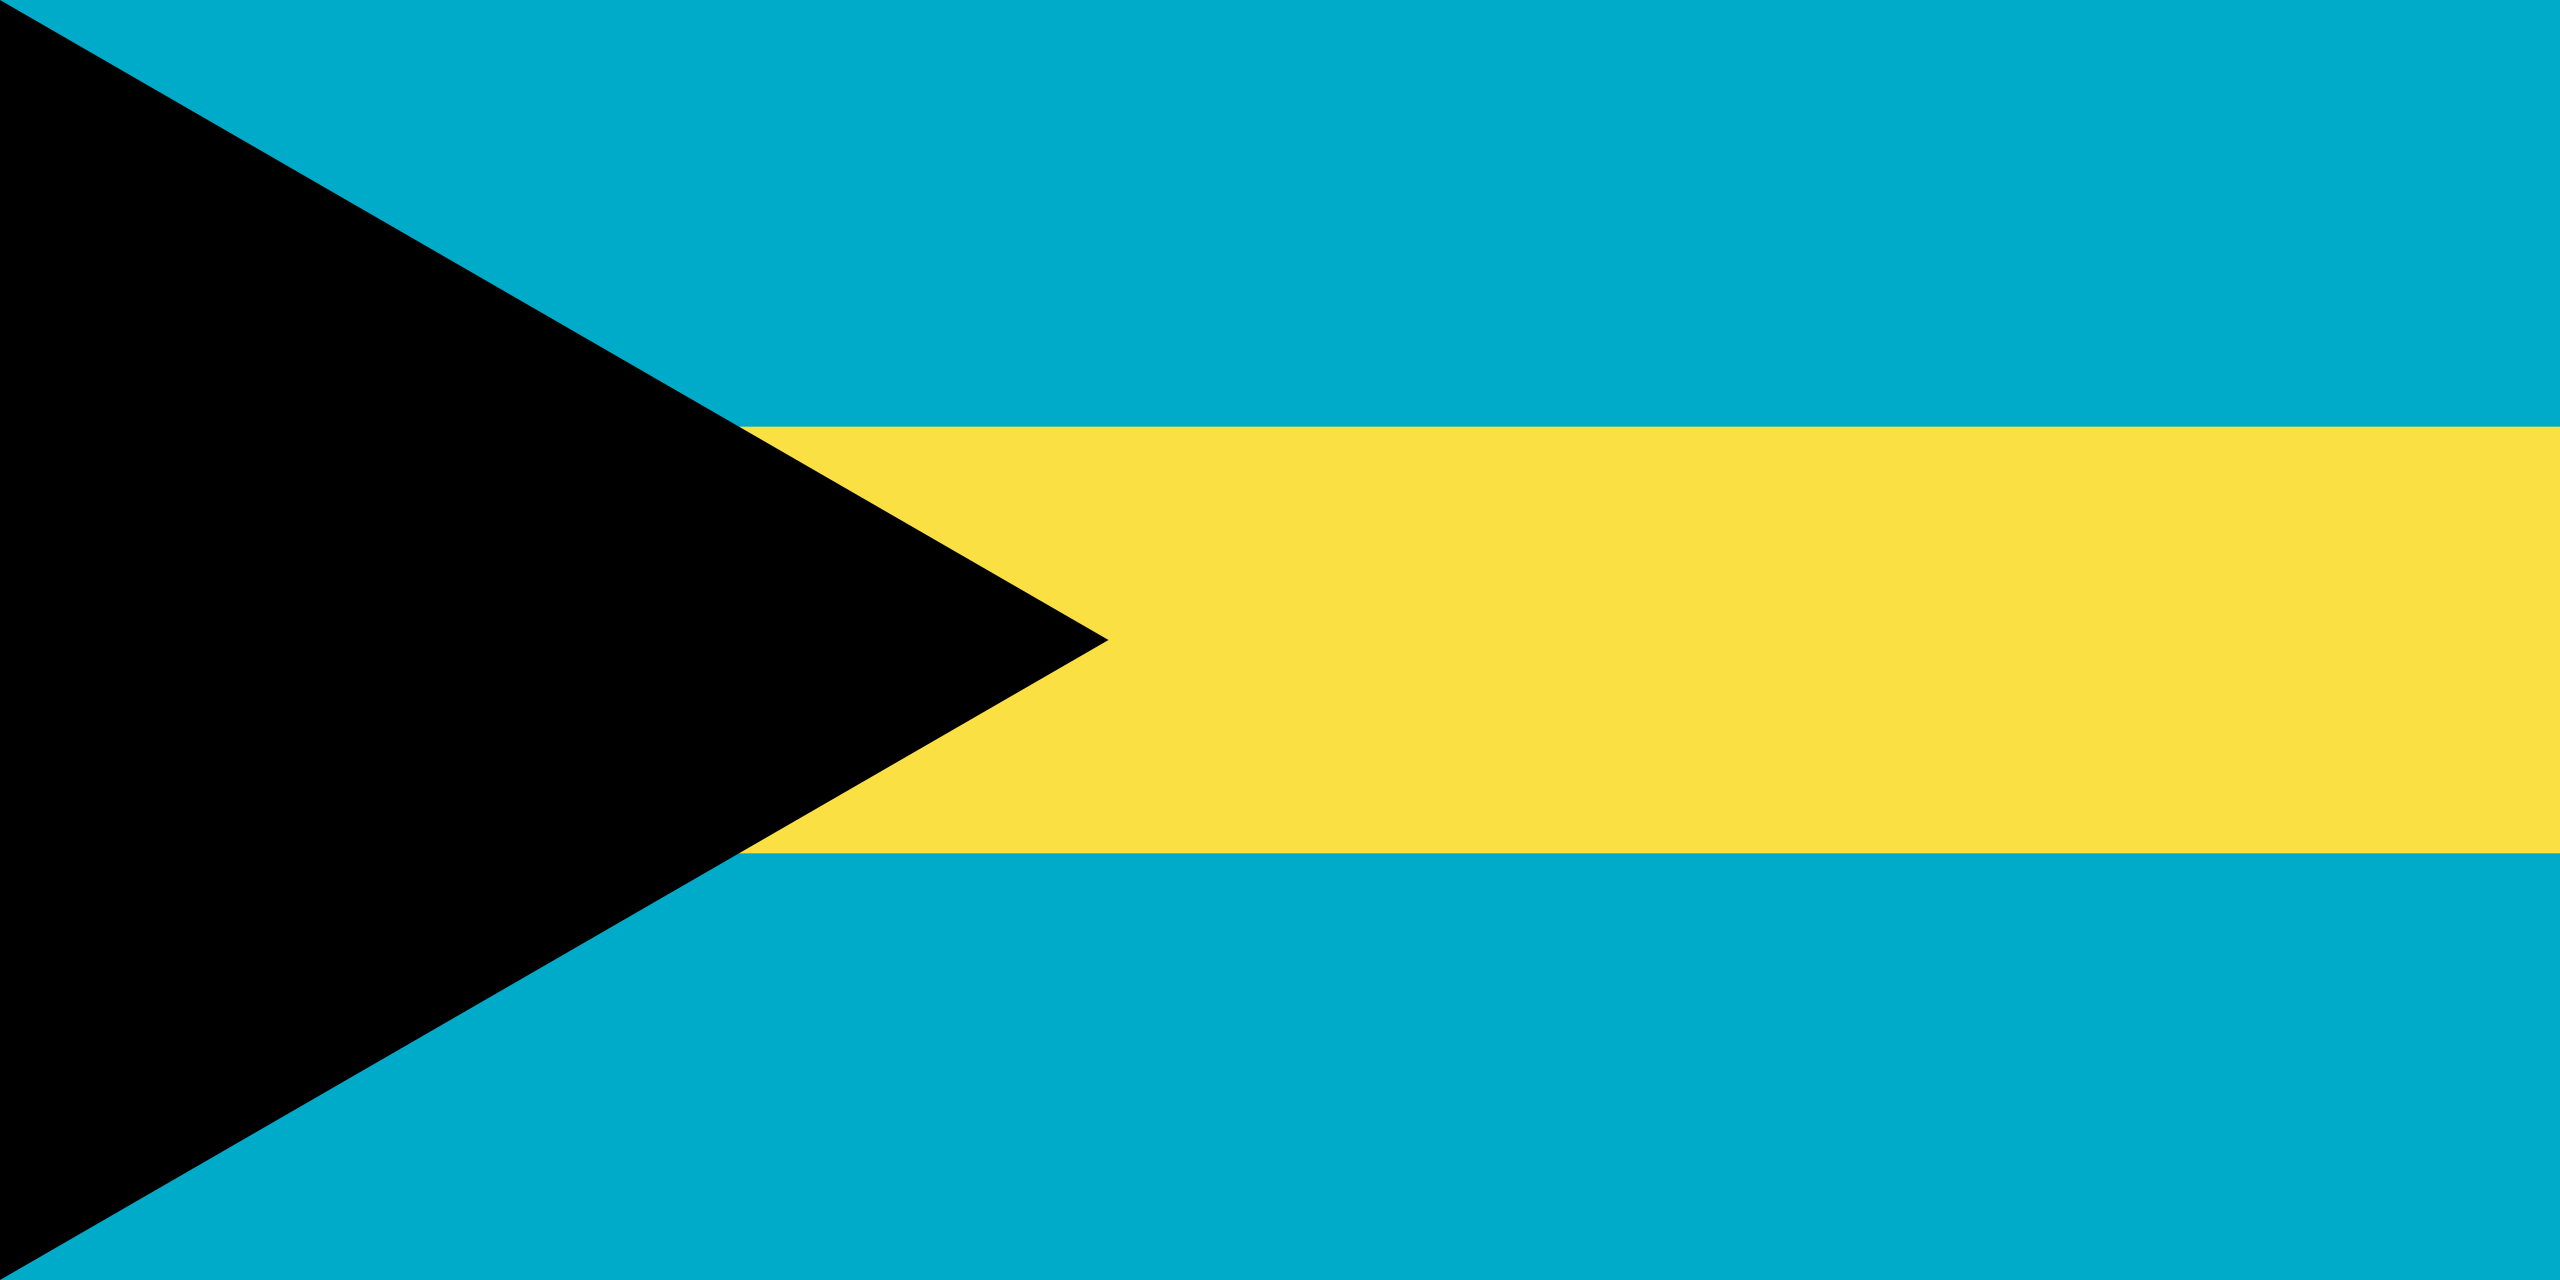 This Is The Flag Of The Bahamas E Bahamas Are Islands